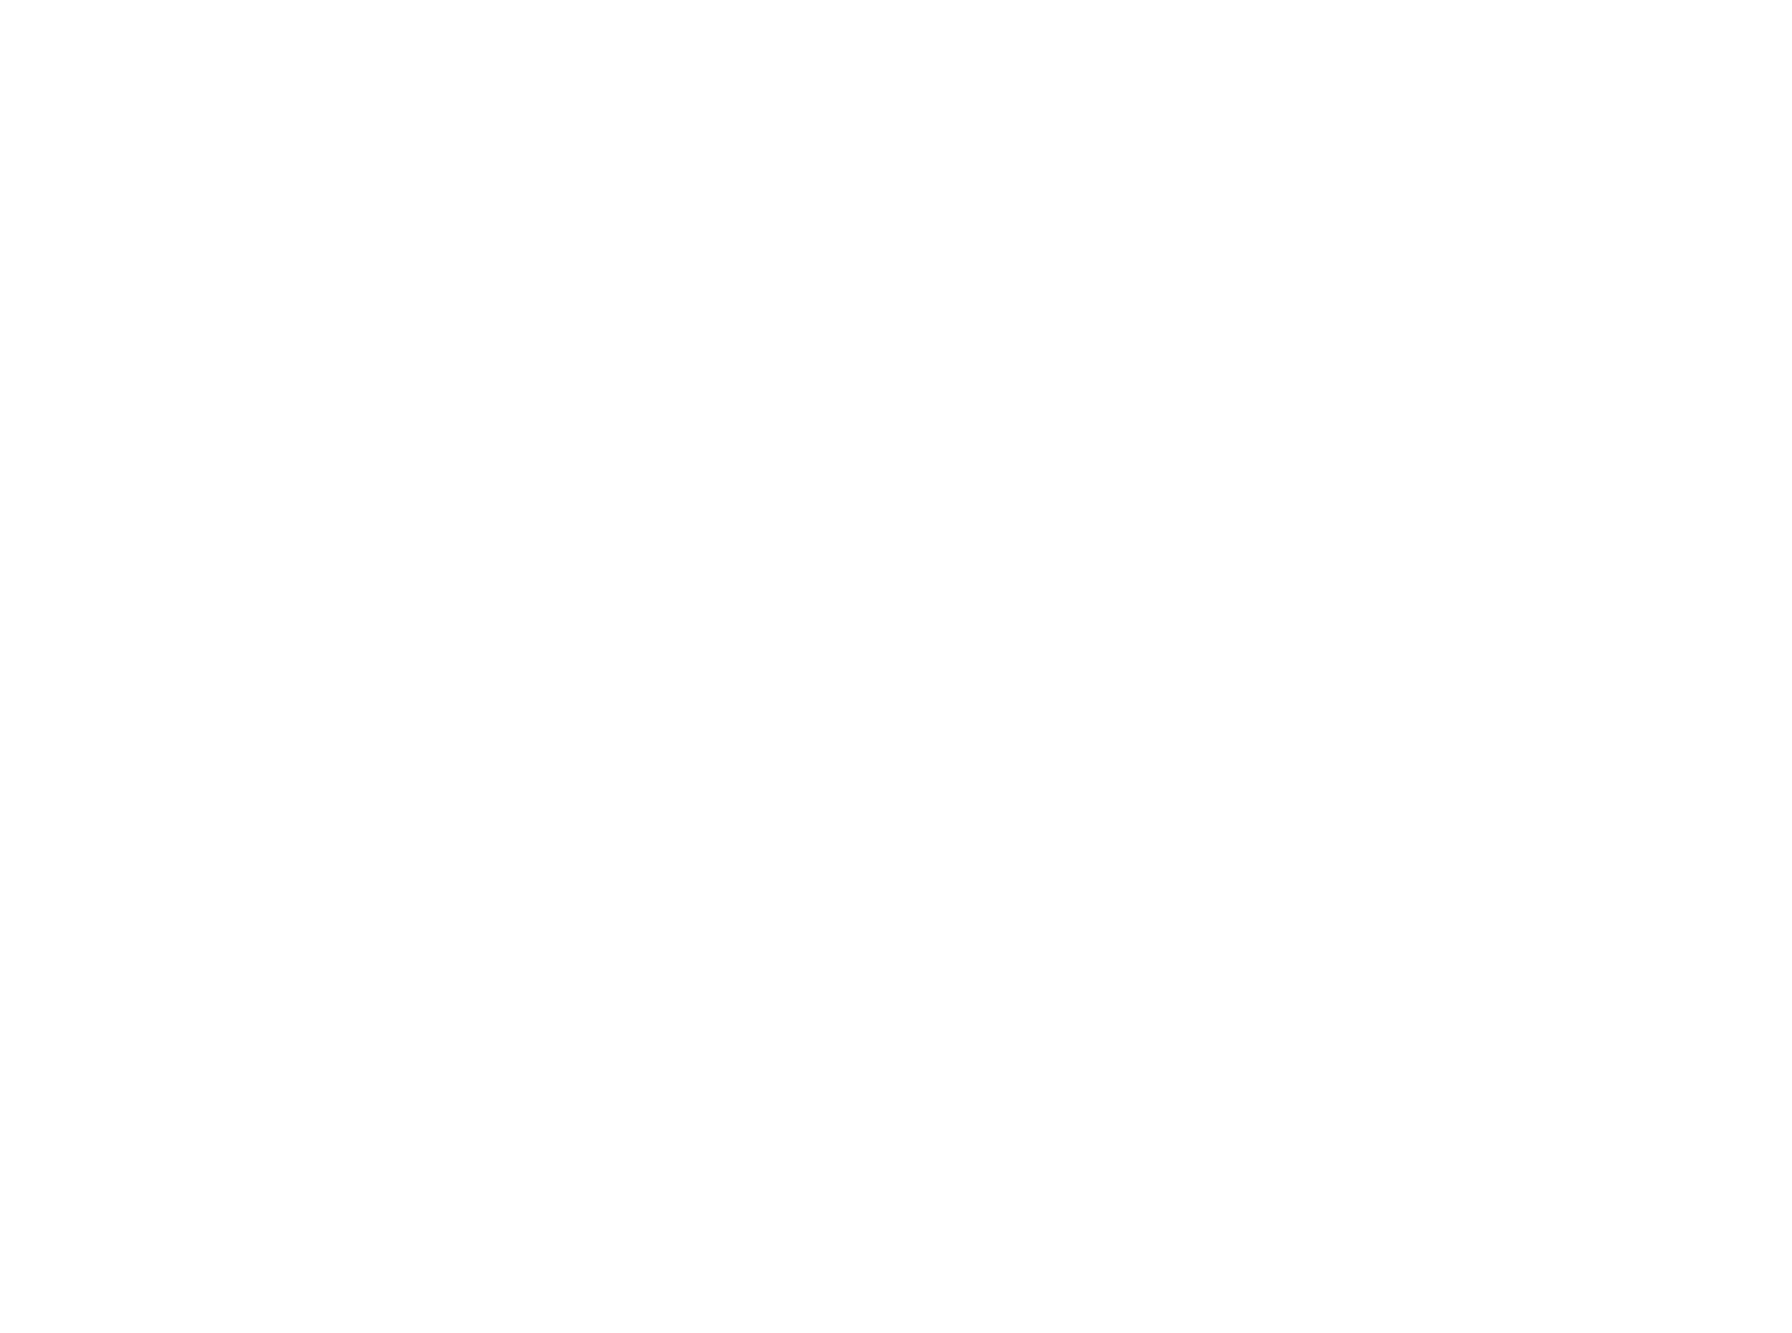 village of birchwood logo - smaller